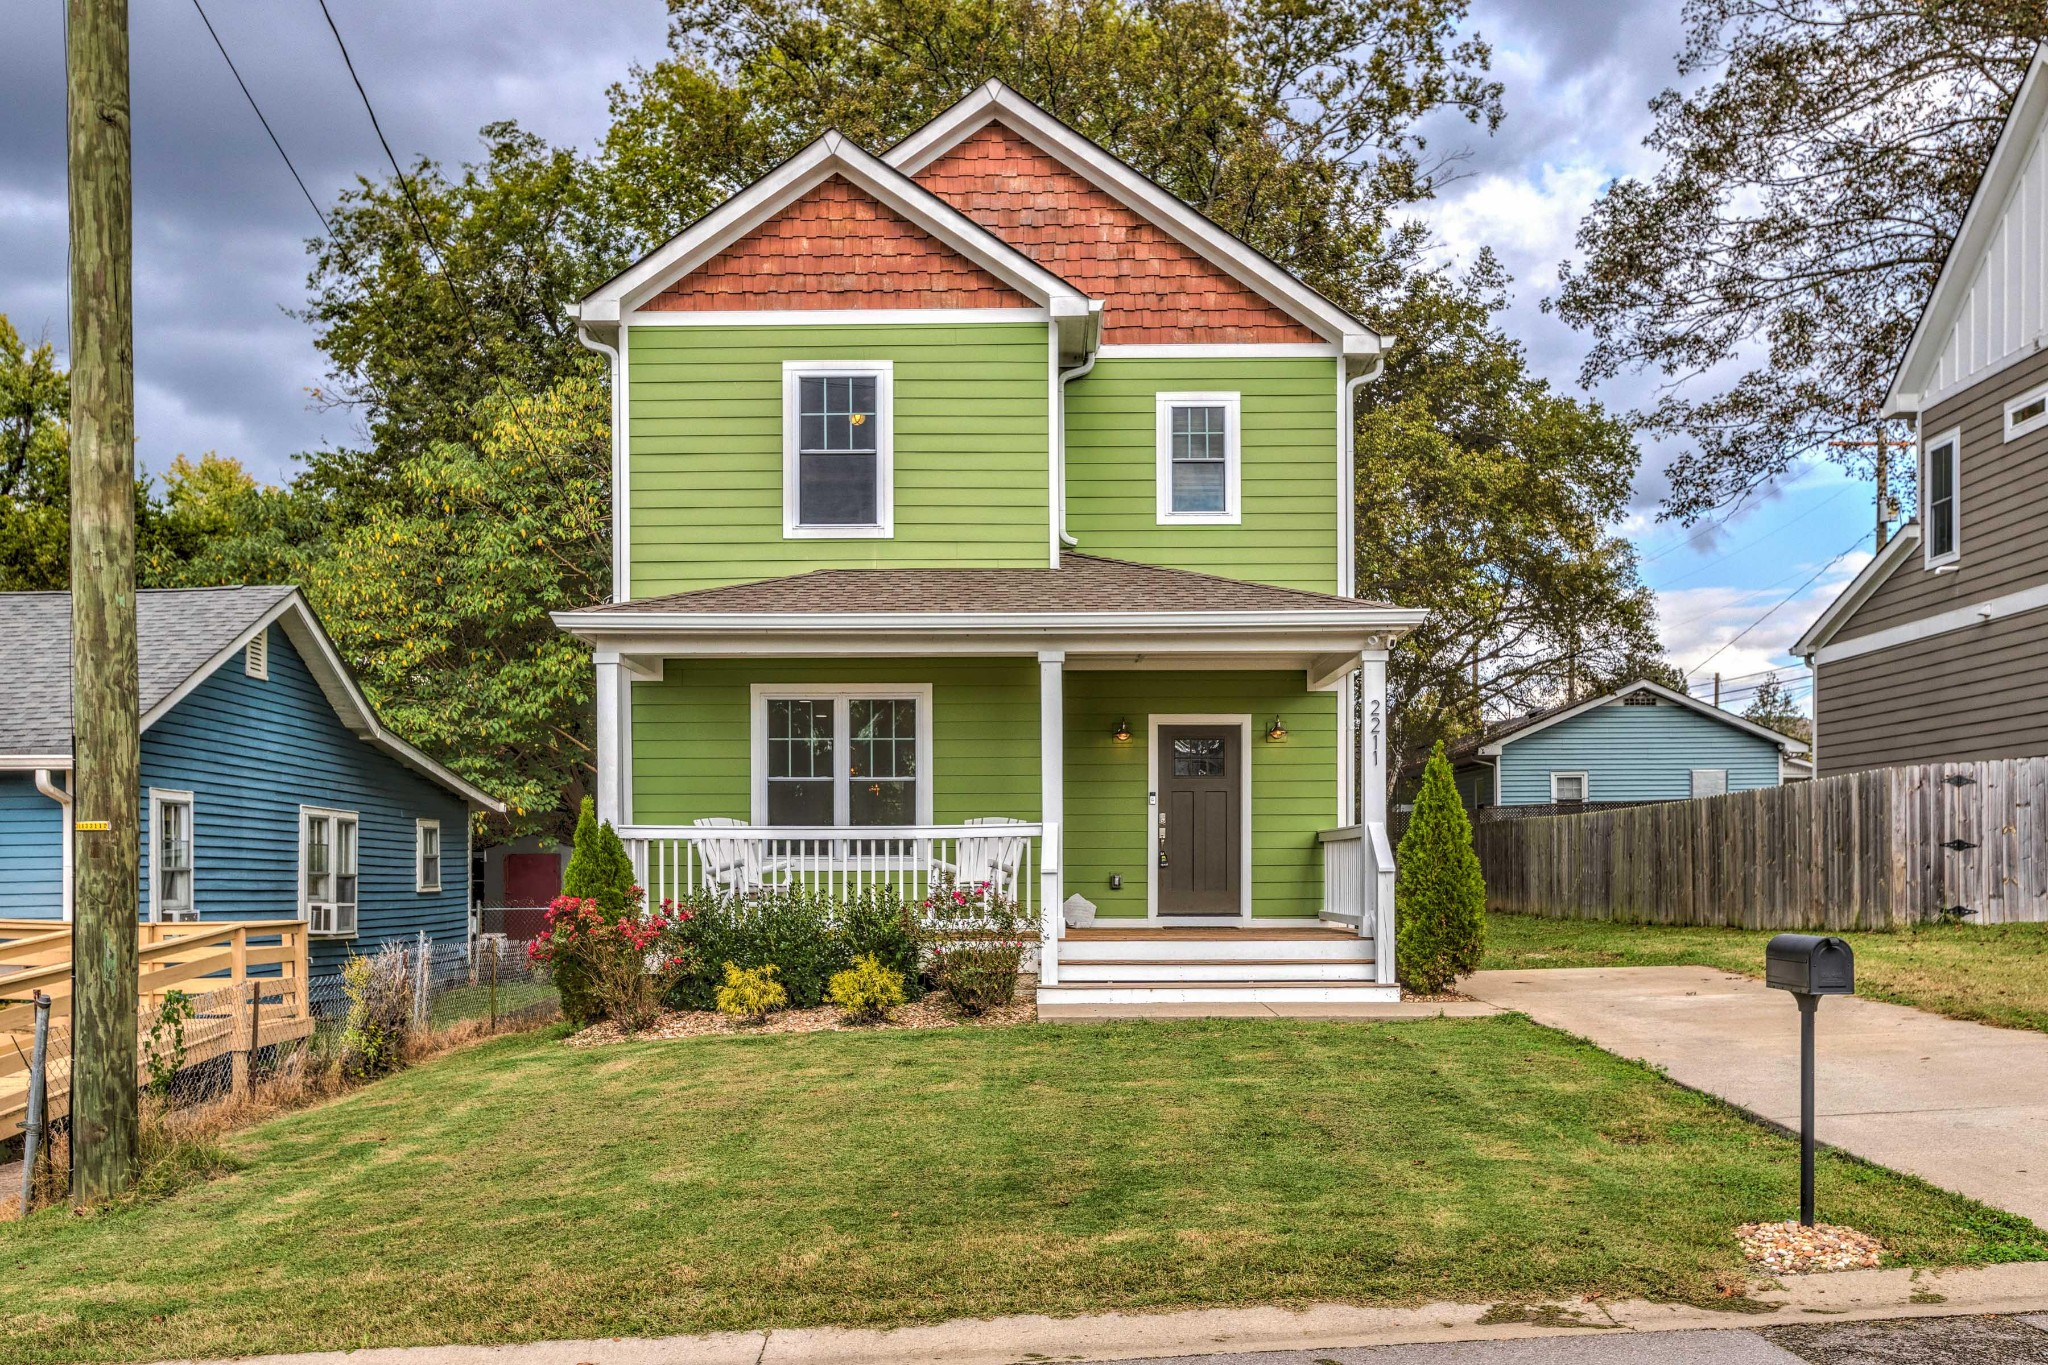 This home features a open floor plan, tall ceilings, storage room, bamboo floors, granite countertops thru out. Great location walk to Blue Turtle marina,. minutes from the lake..15 minutes from the airport and 25 min. from downtown Nashville. Great location